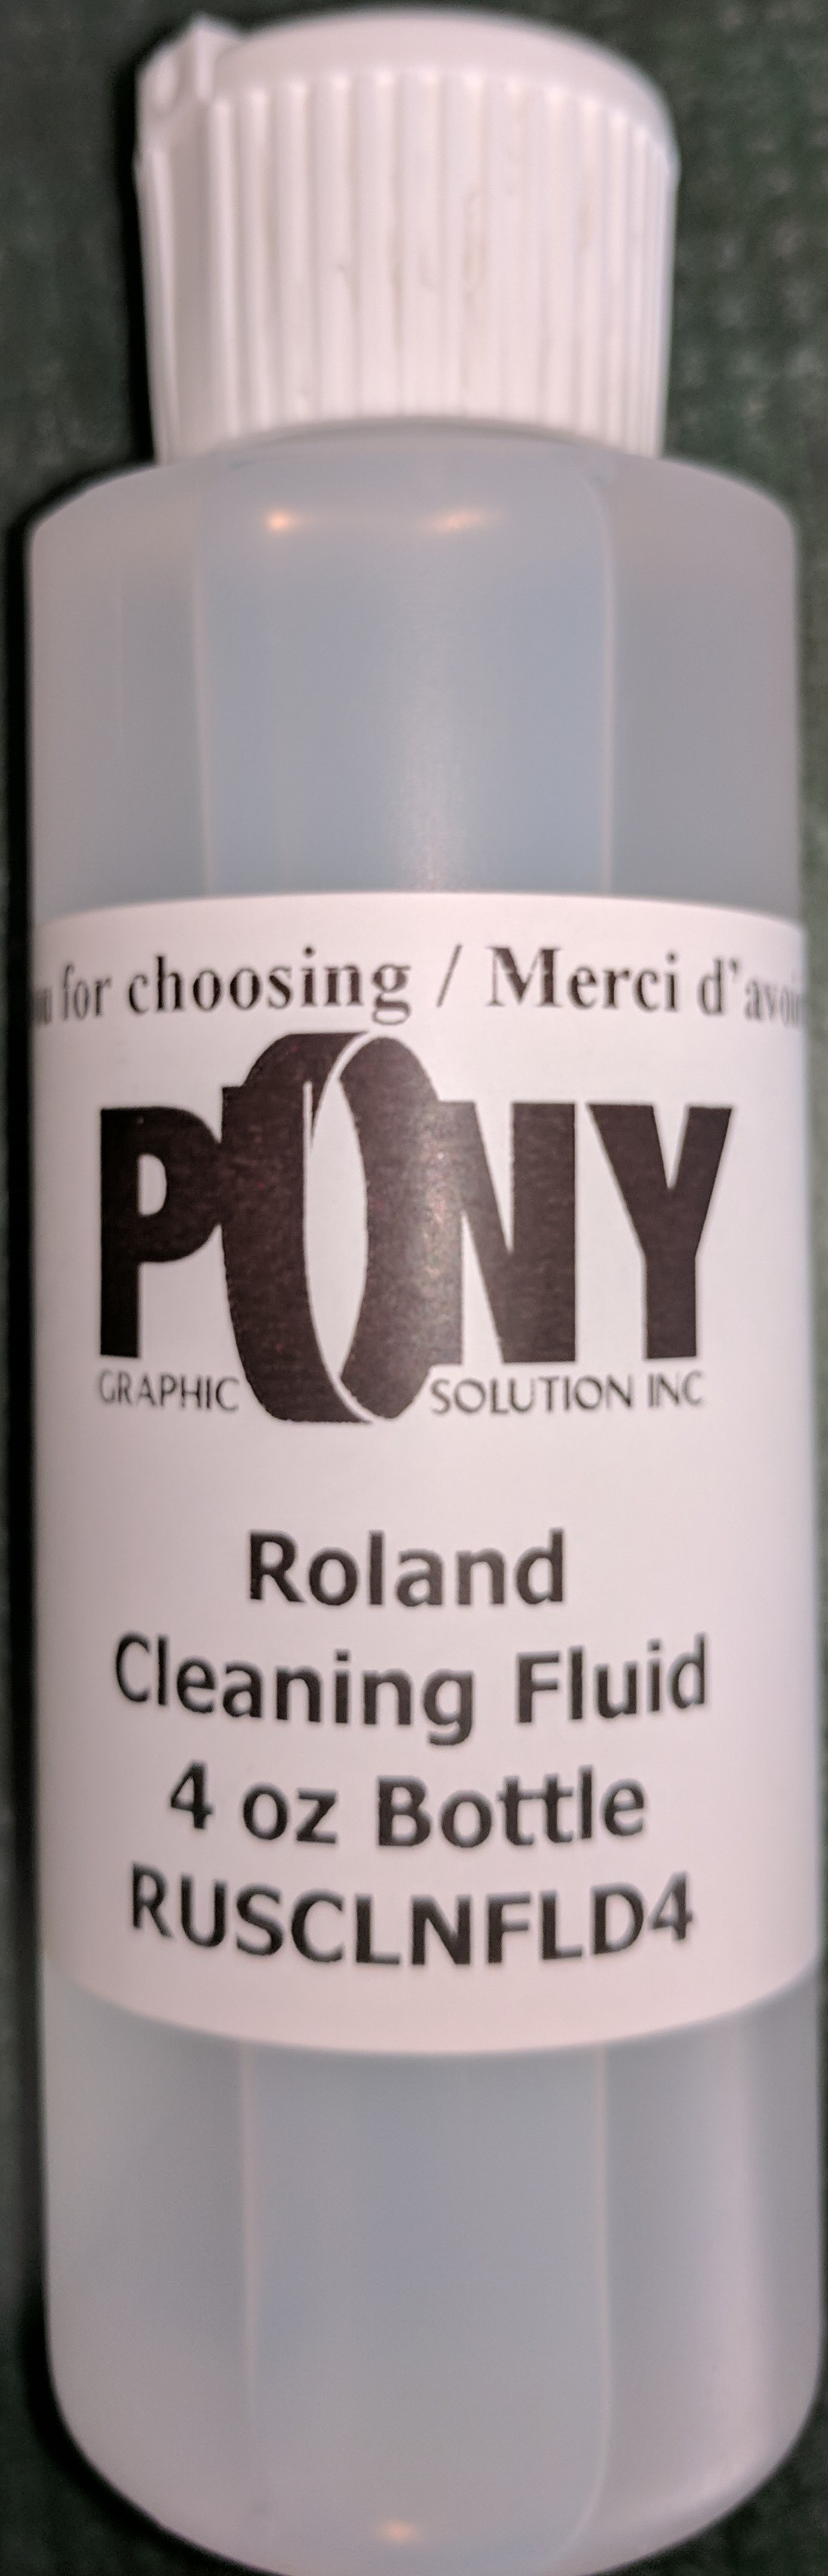 RolandCleaning Fluid InkJet 4 oz